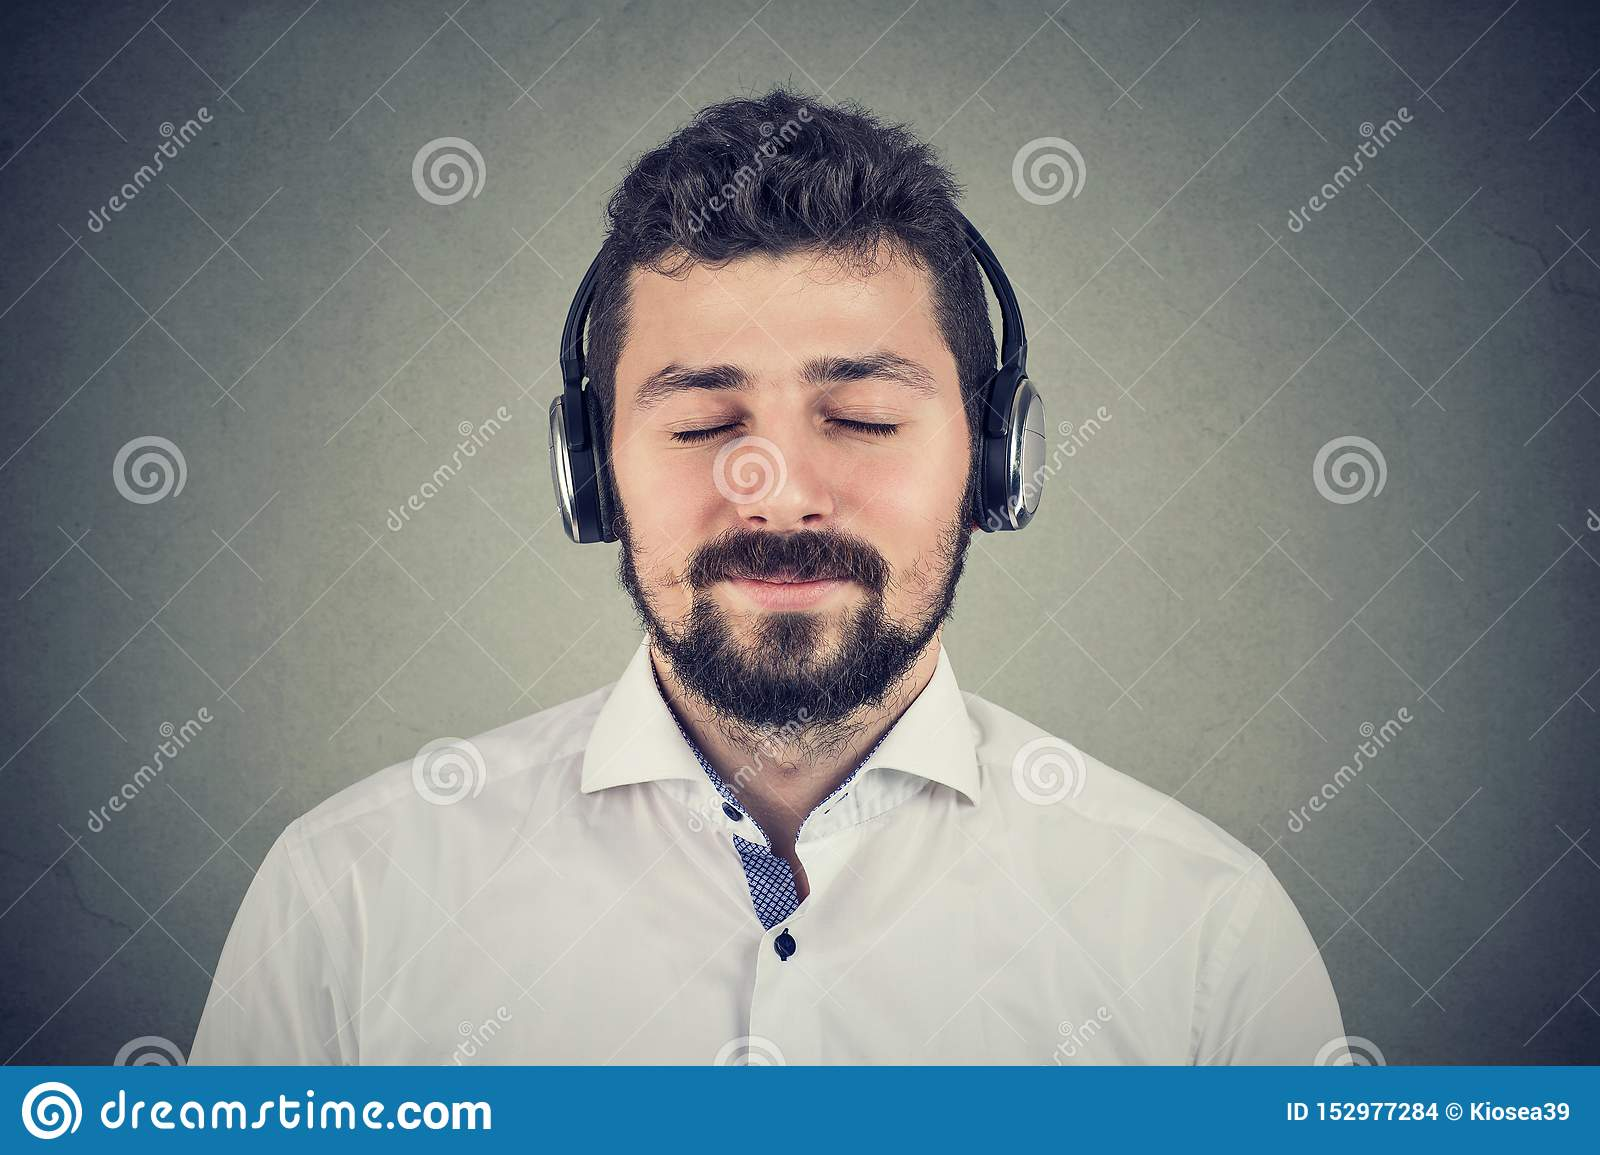 Handsome young man listening to music wearing headphones